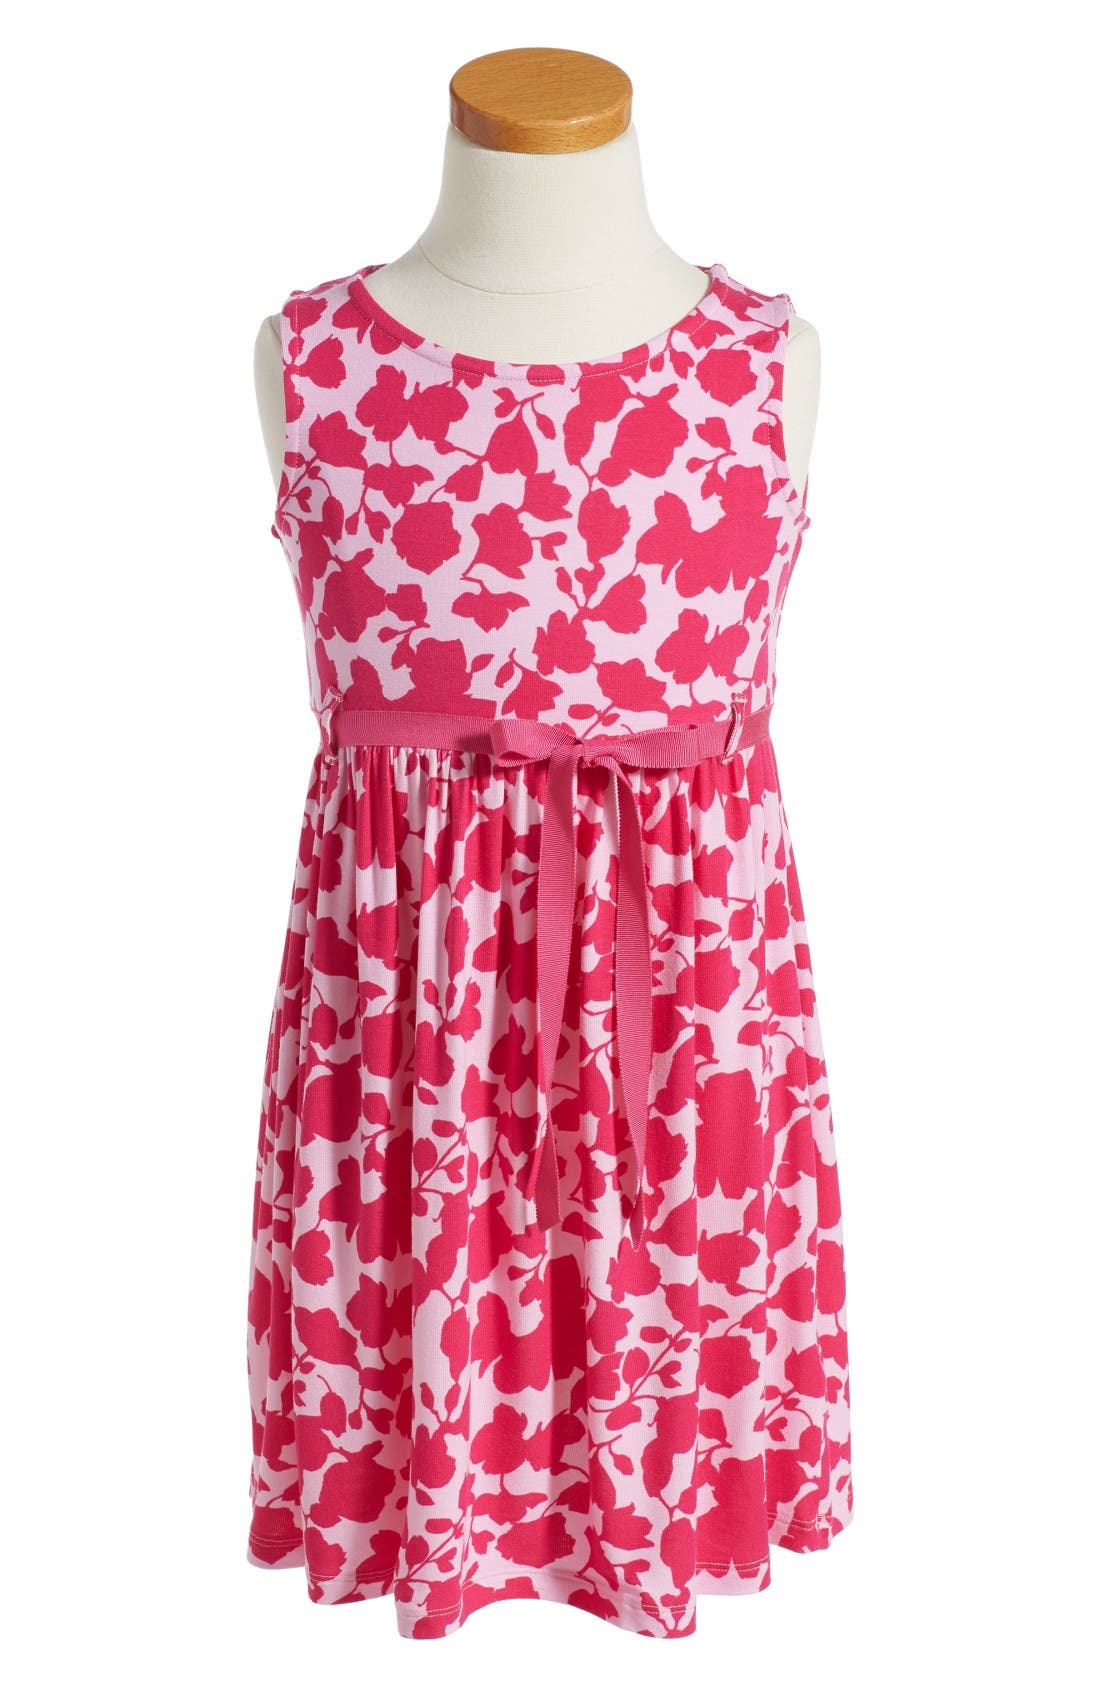 Oscar de la Renta Flower Silhouette Sundress (Toddler Girls, Little Girls & Big Girls)